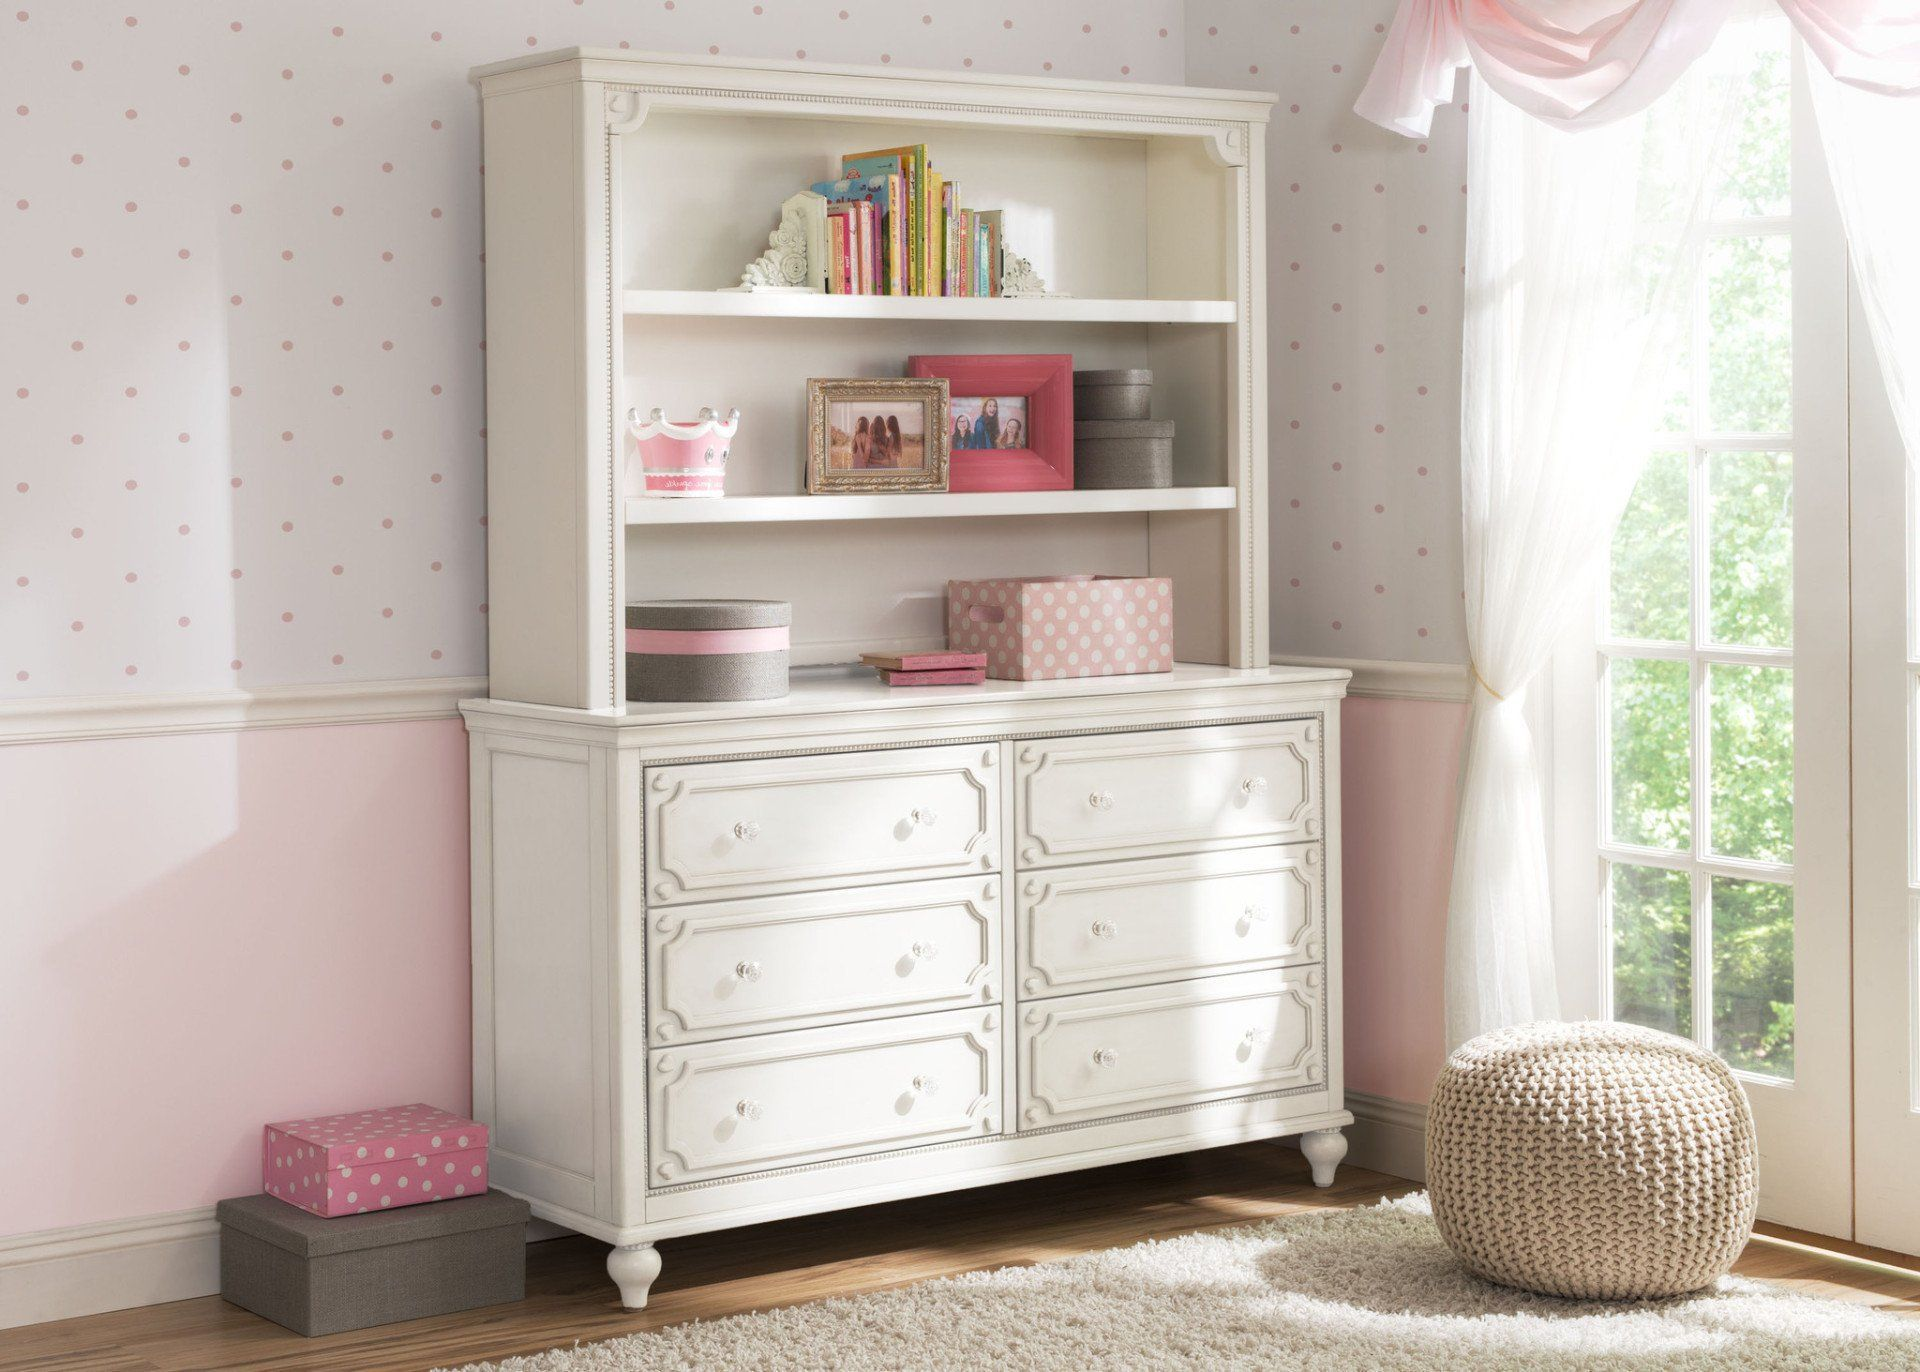 Delta Children White Ambiance (108) Disney Princess Magical Dreams Bookcase/Hutch Front View atop the Disney Princess Magical Dreams 6-Drawer Dresser, Room View a1a